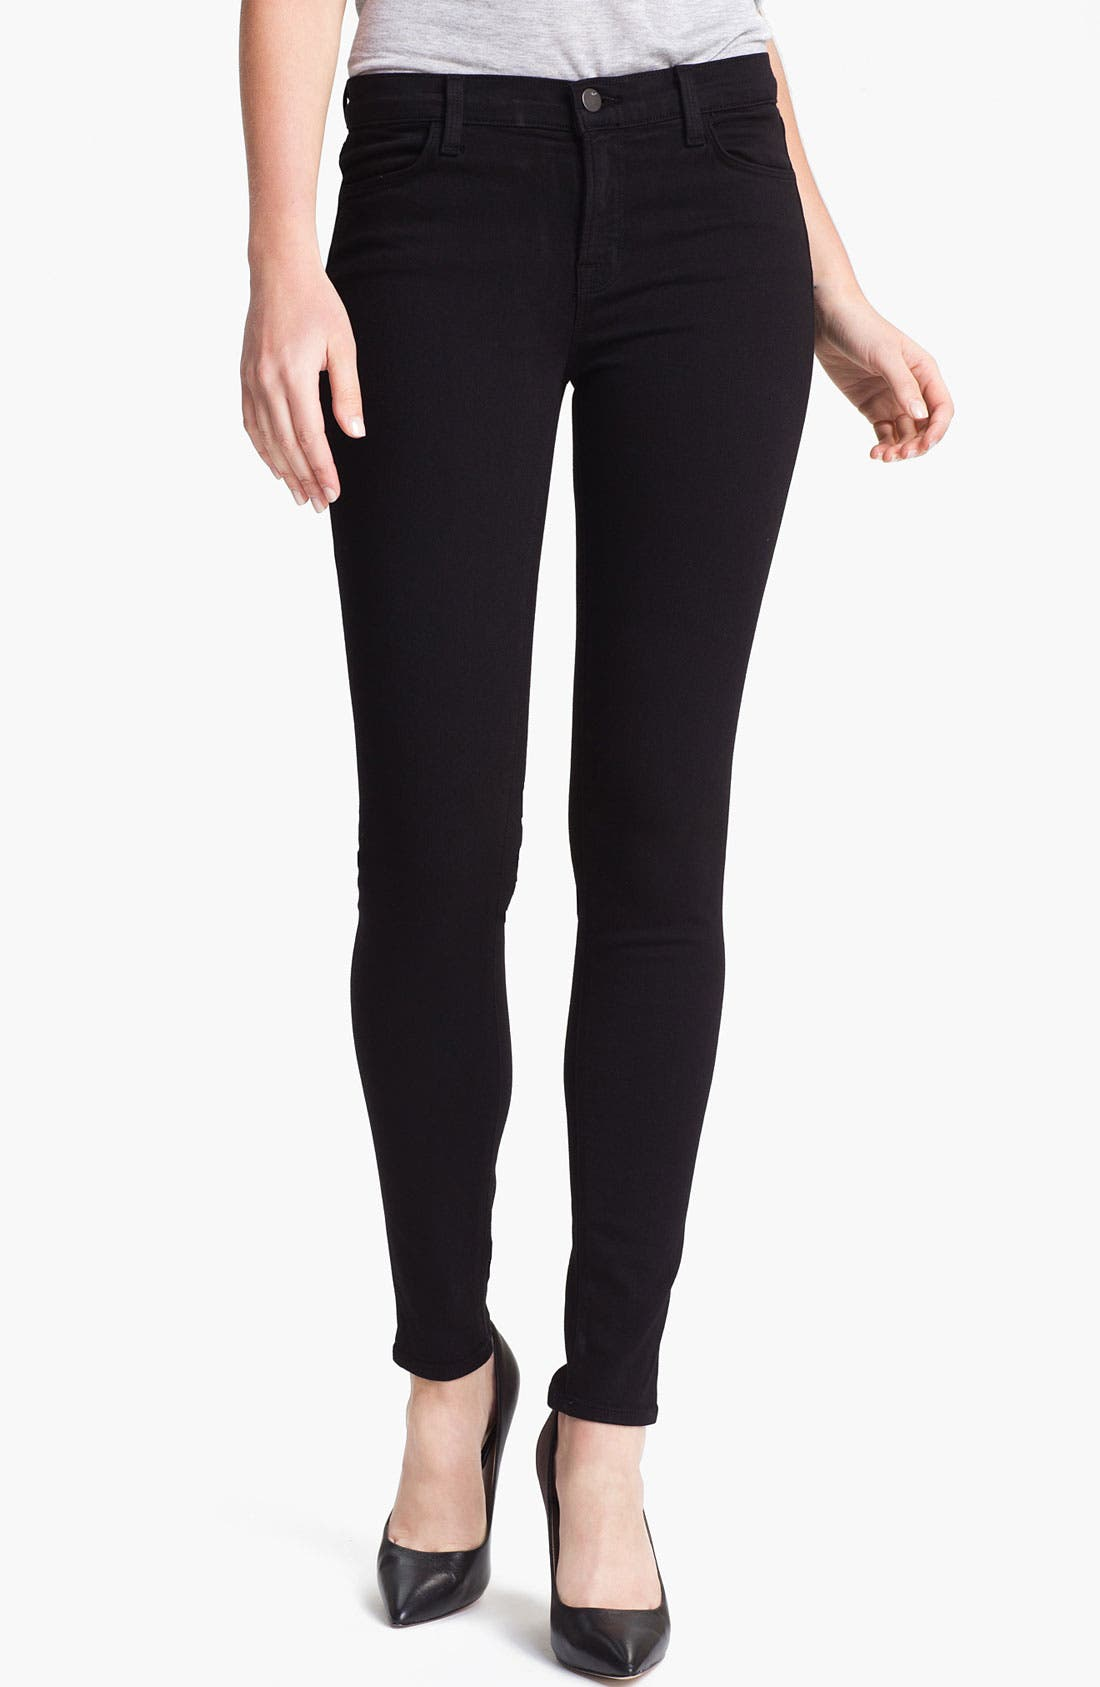 Alternate Image 1 Selected - J Brand Super Skinny Stretch Jeans (Black)